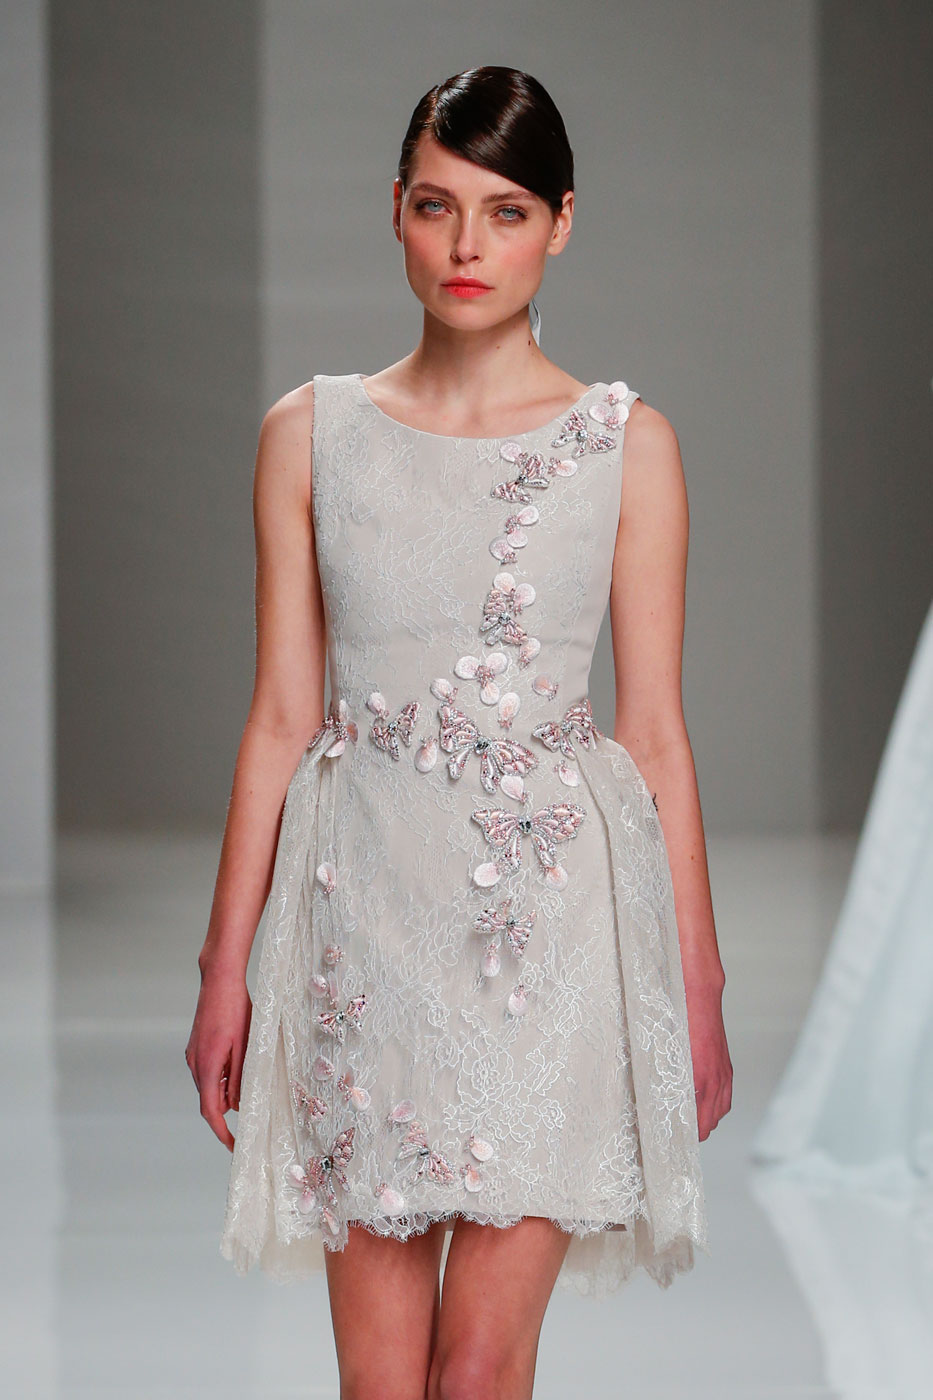 Georges-Hobeika-fashion-runway-show-haute-couture-paris-spring-2015-the-impression-64